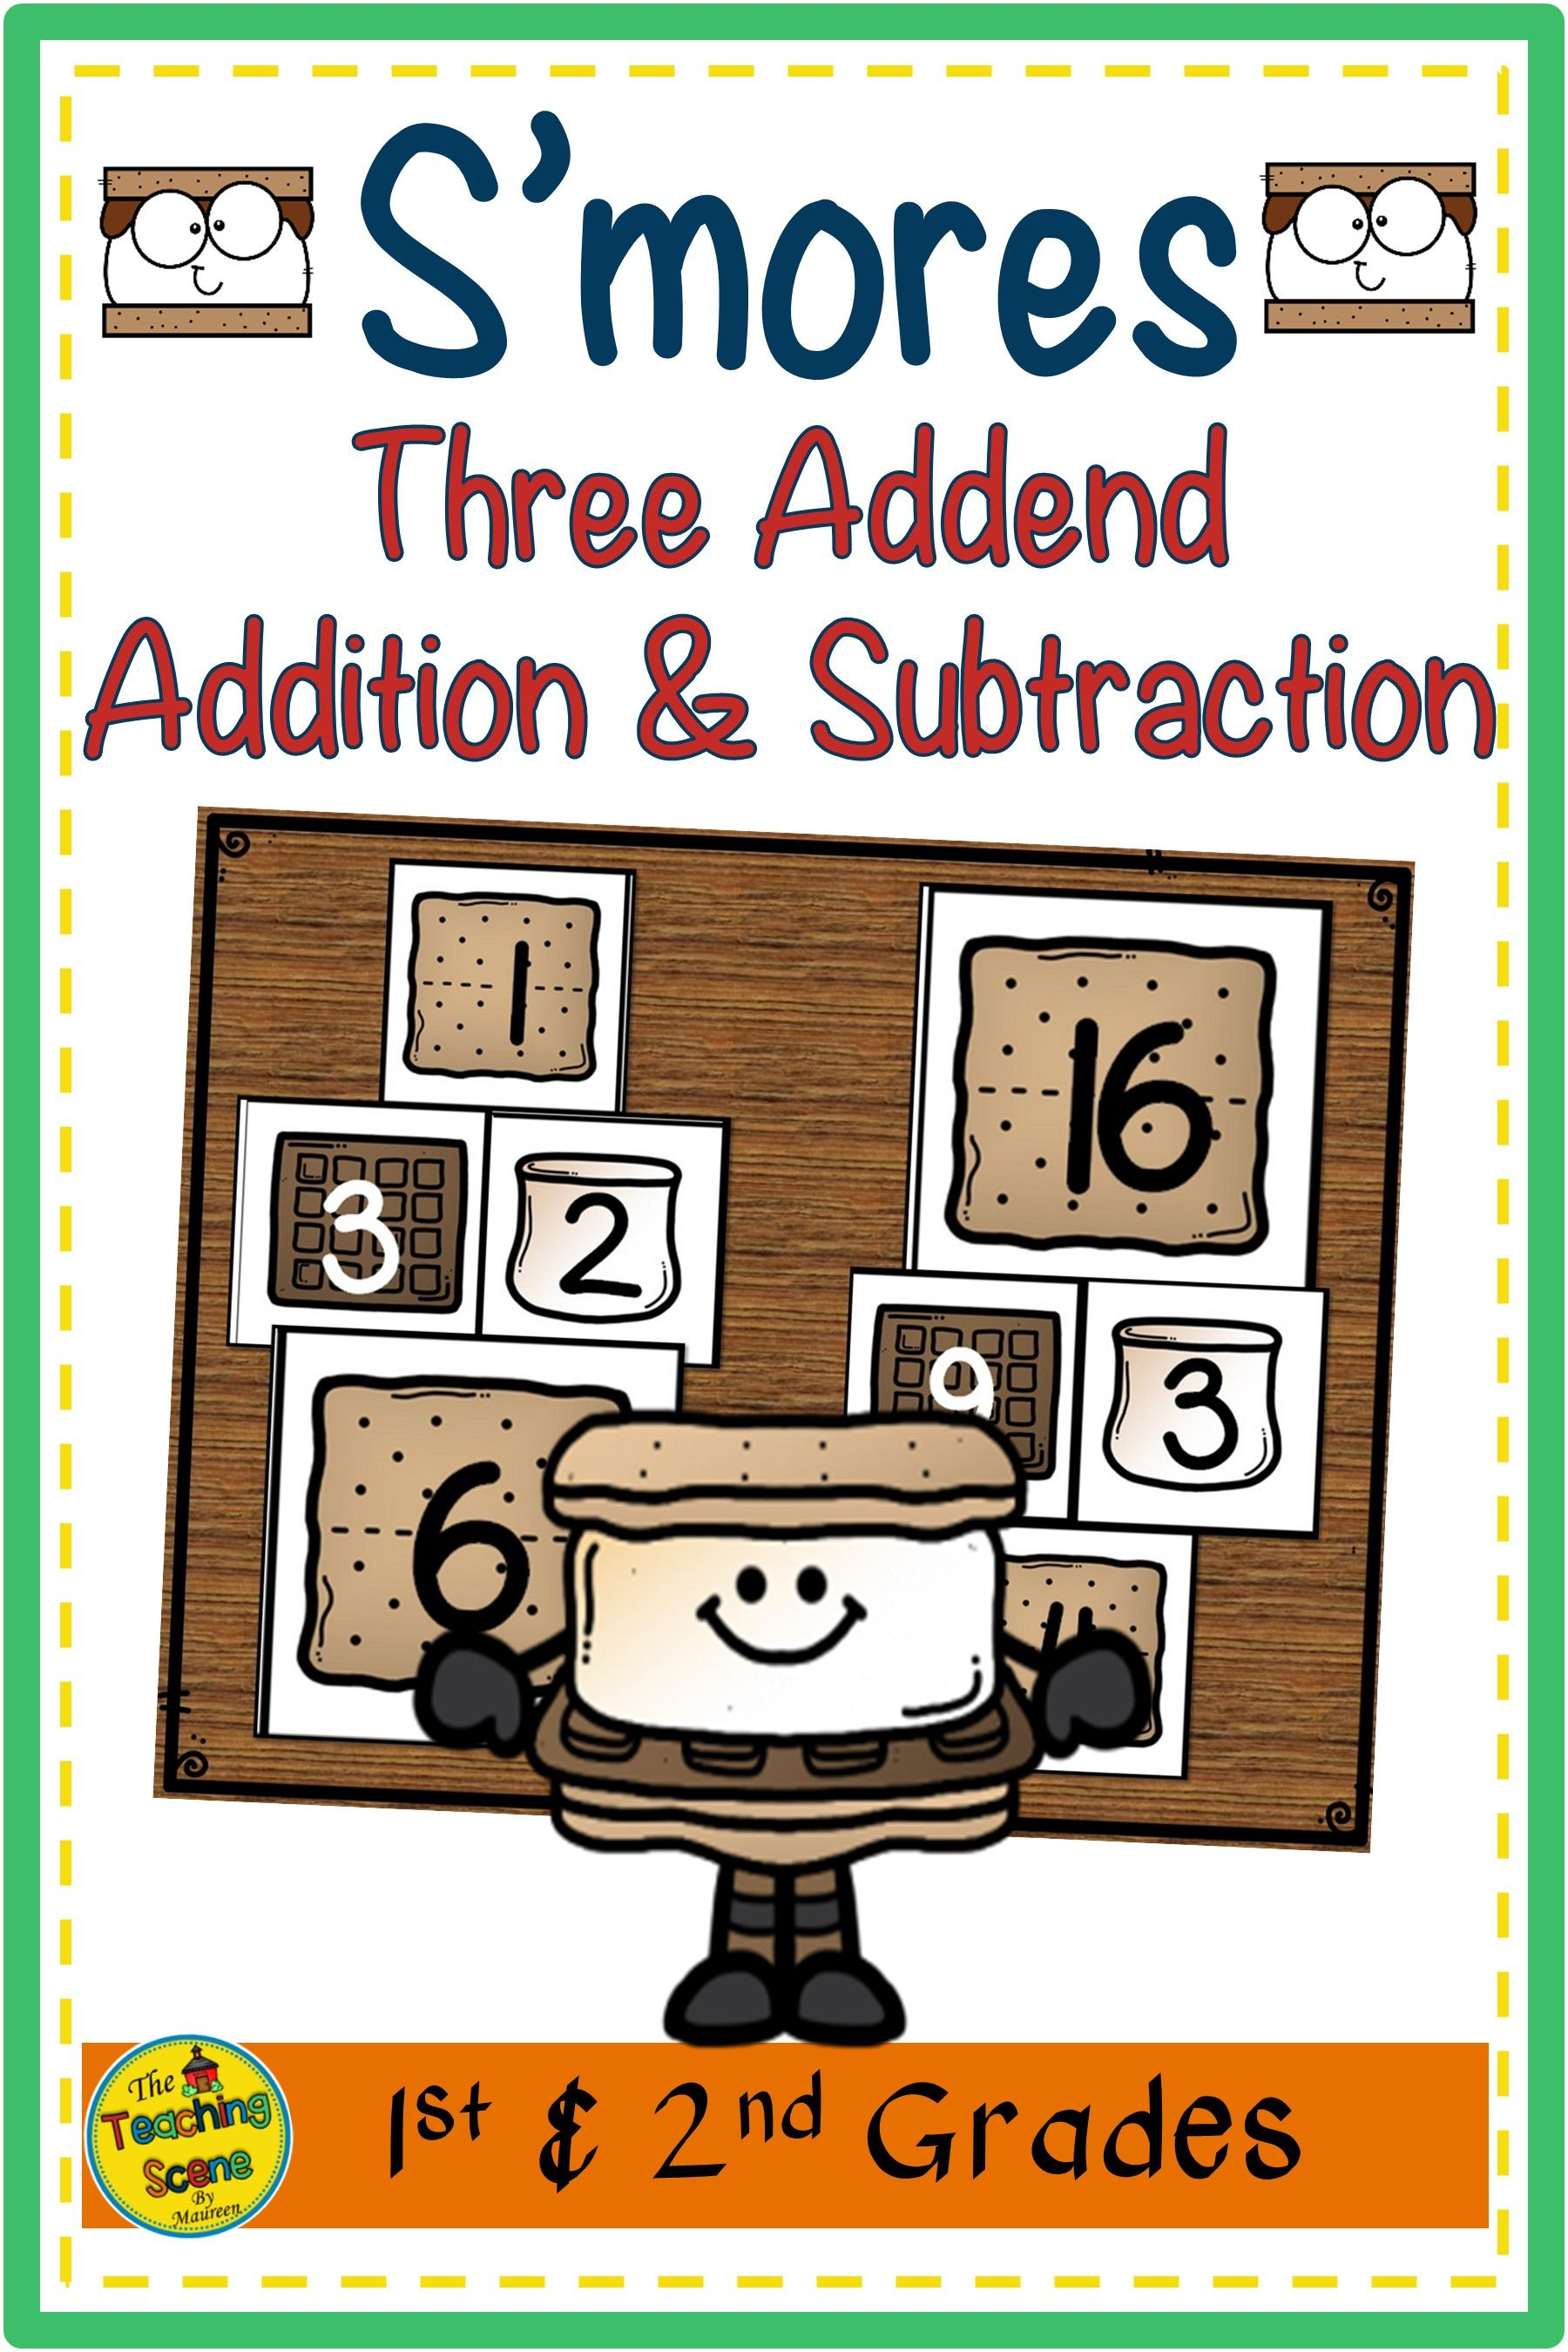 S Mores Three Addend Addition Amp Subtraction 0 20 In